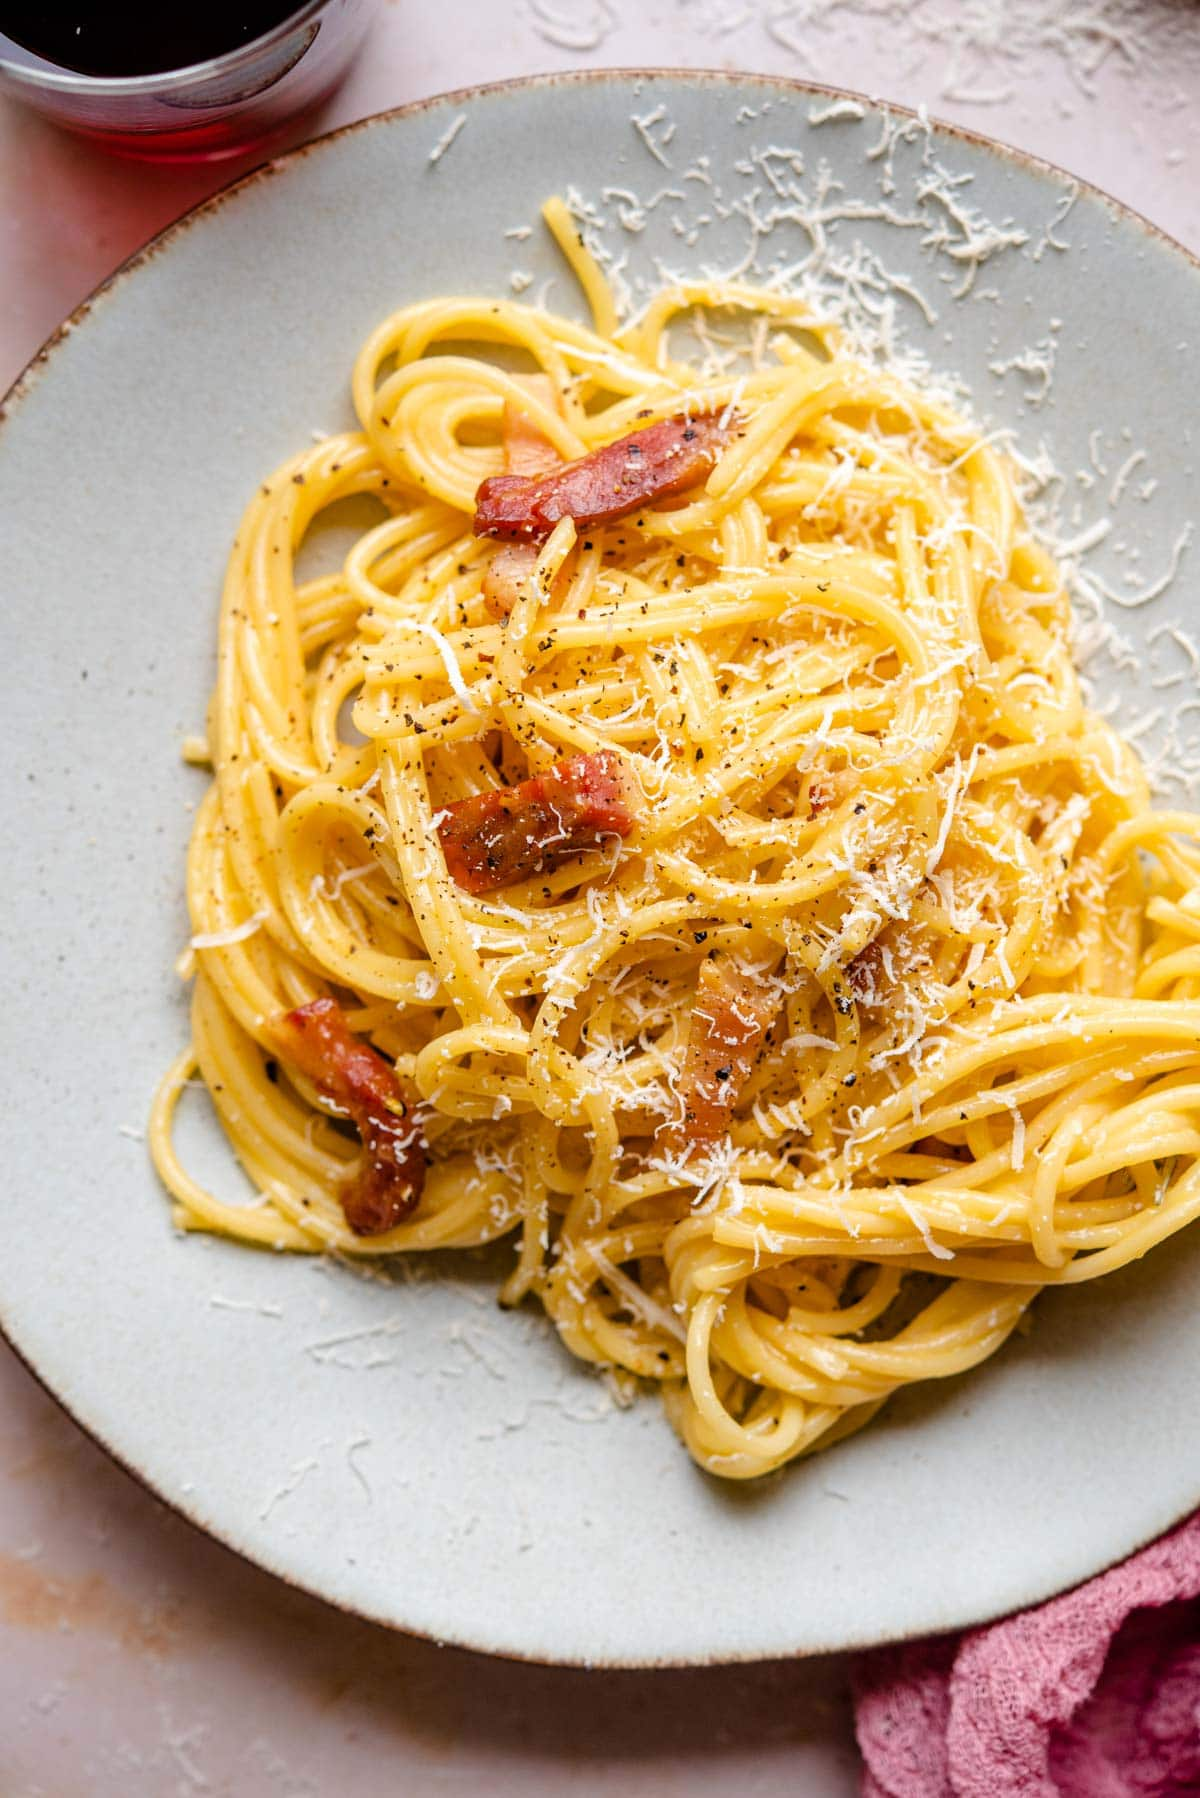 A close up of spaghetti on a plate with pieces of guanciale